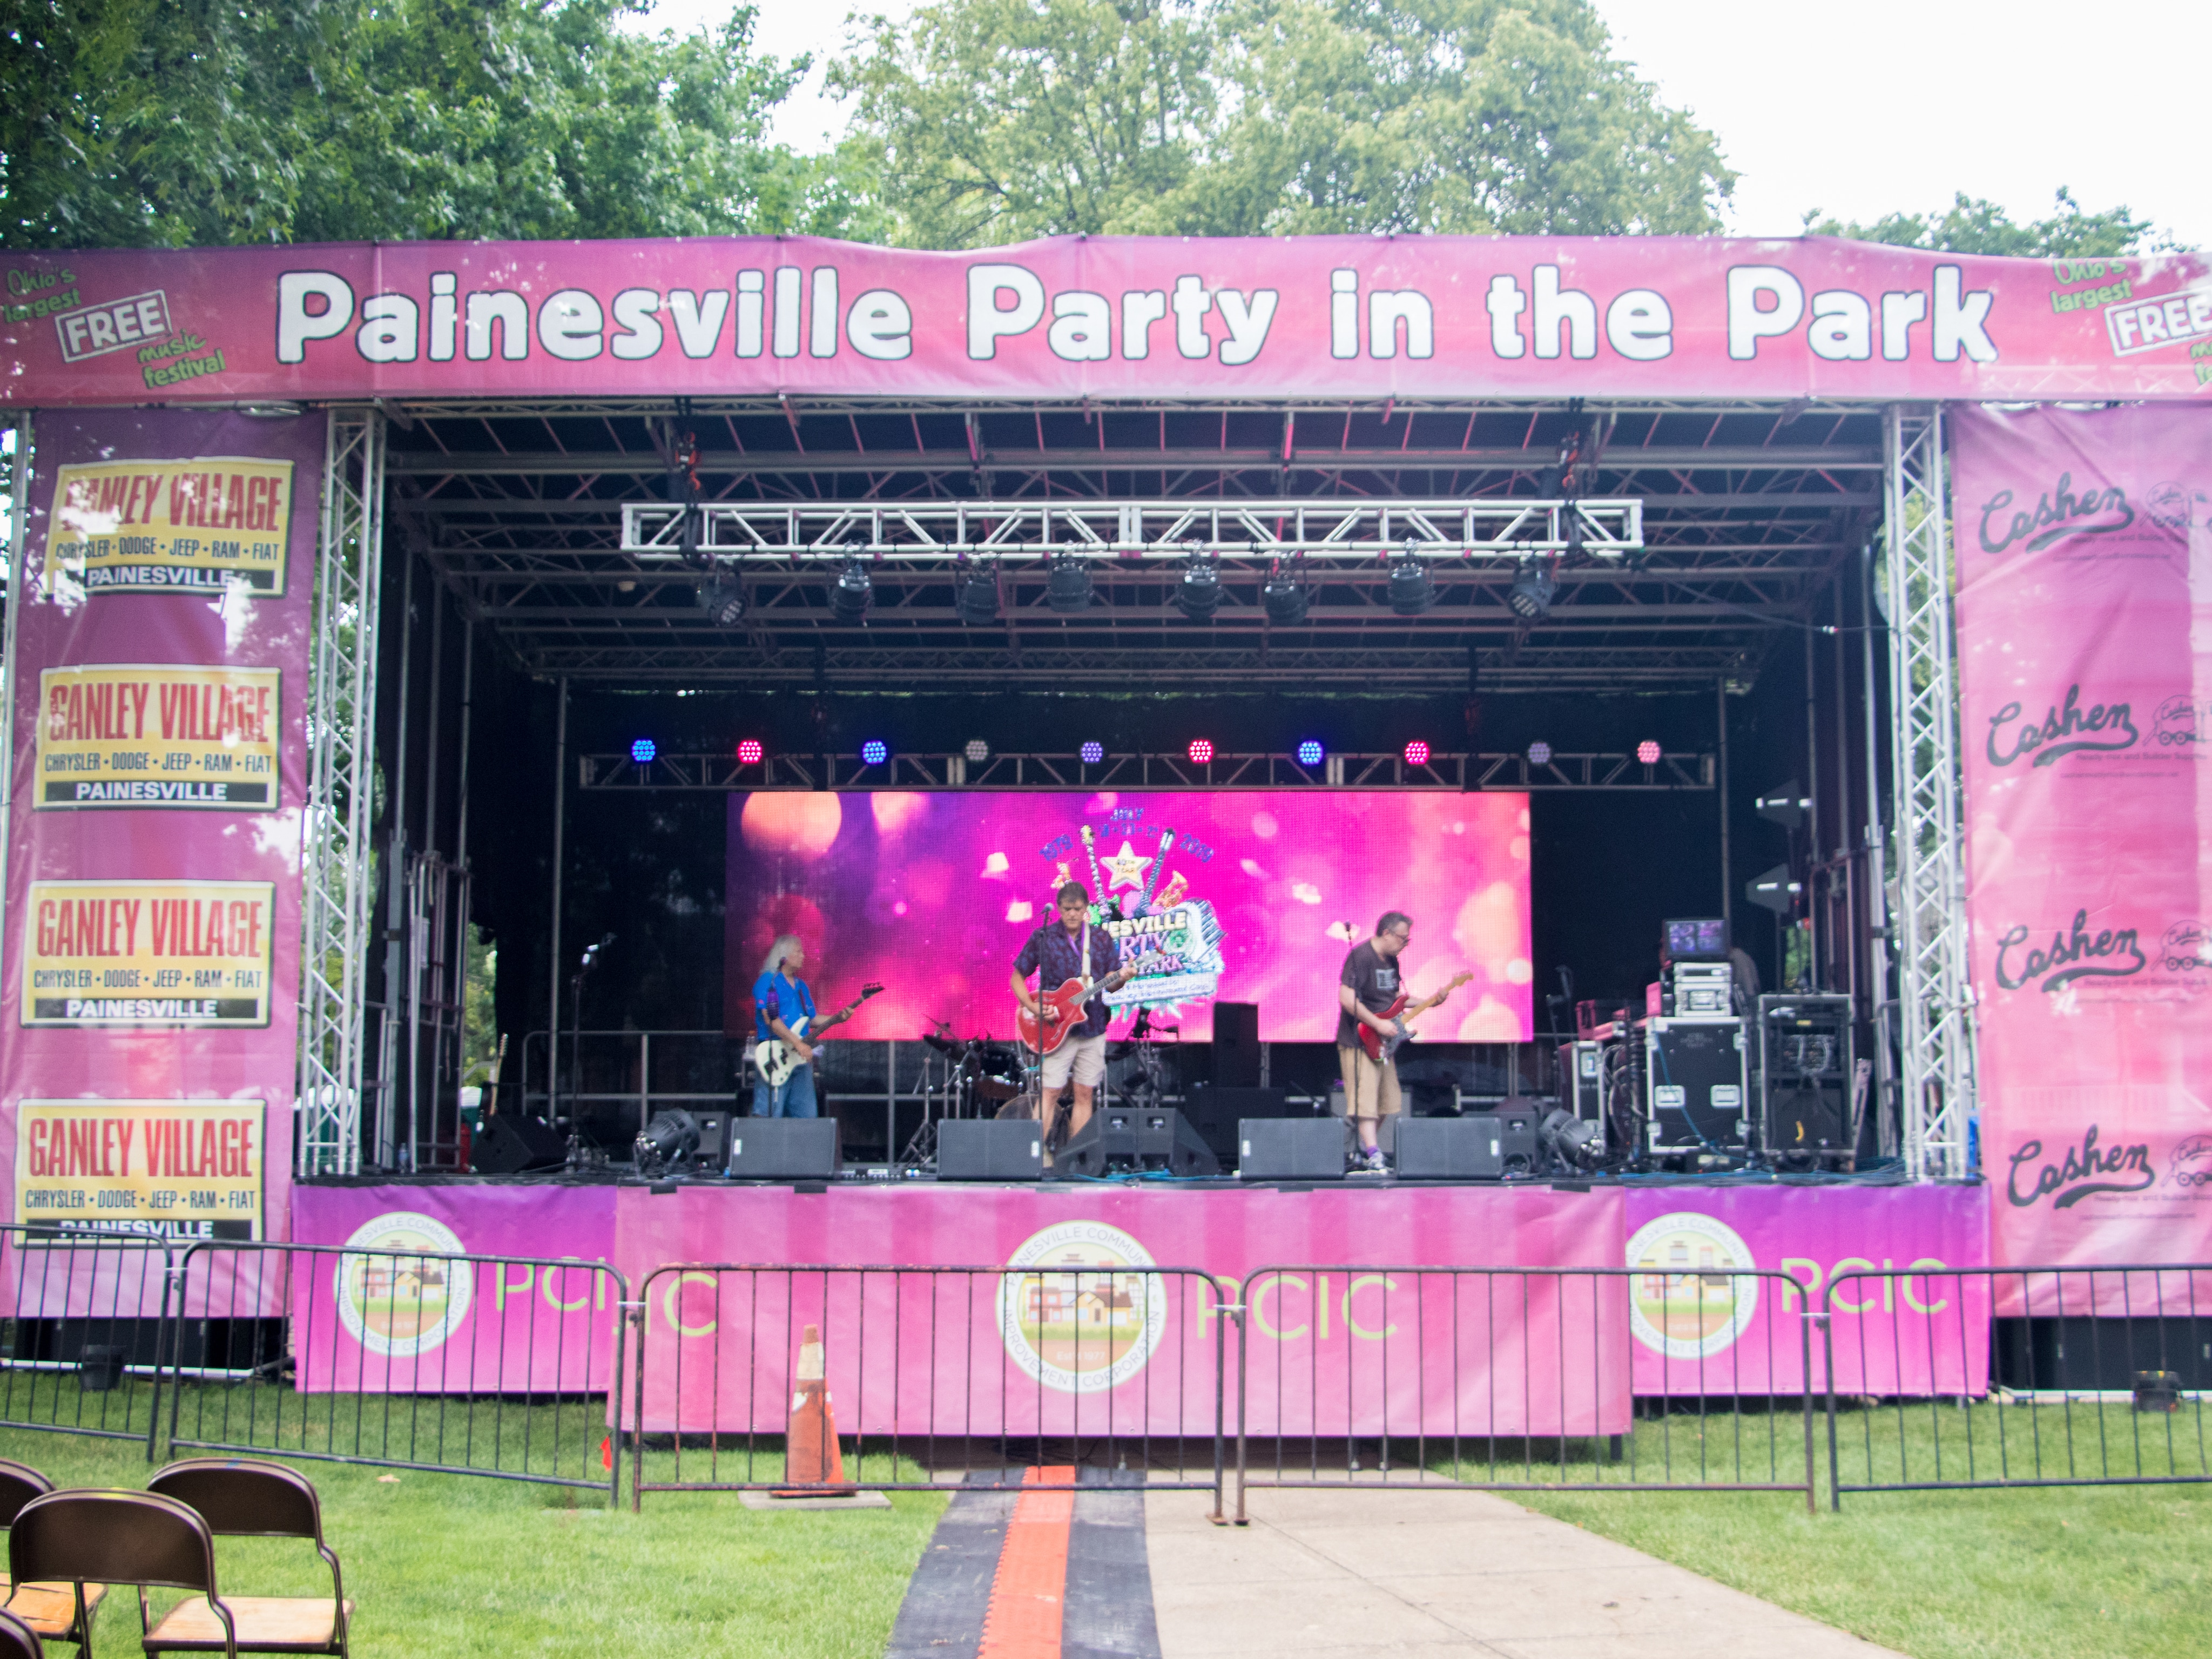 Painesville Party in the Park 2019